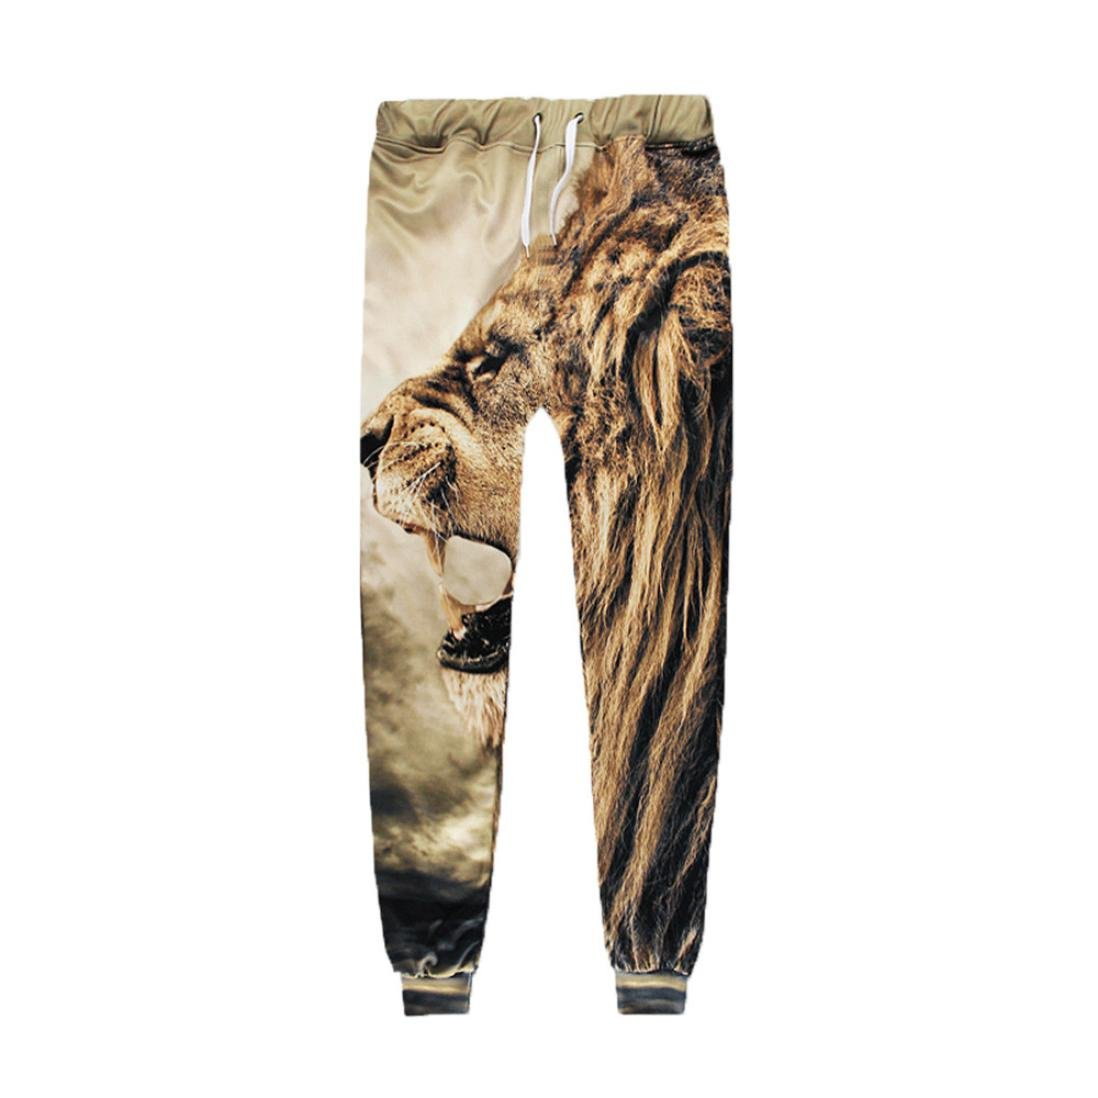 Allywit Men 3D Digital Print Jogger Pants Casual Sports Sweatpants with Pockets by Allywit (Image #3)